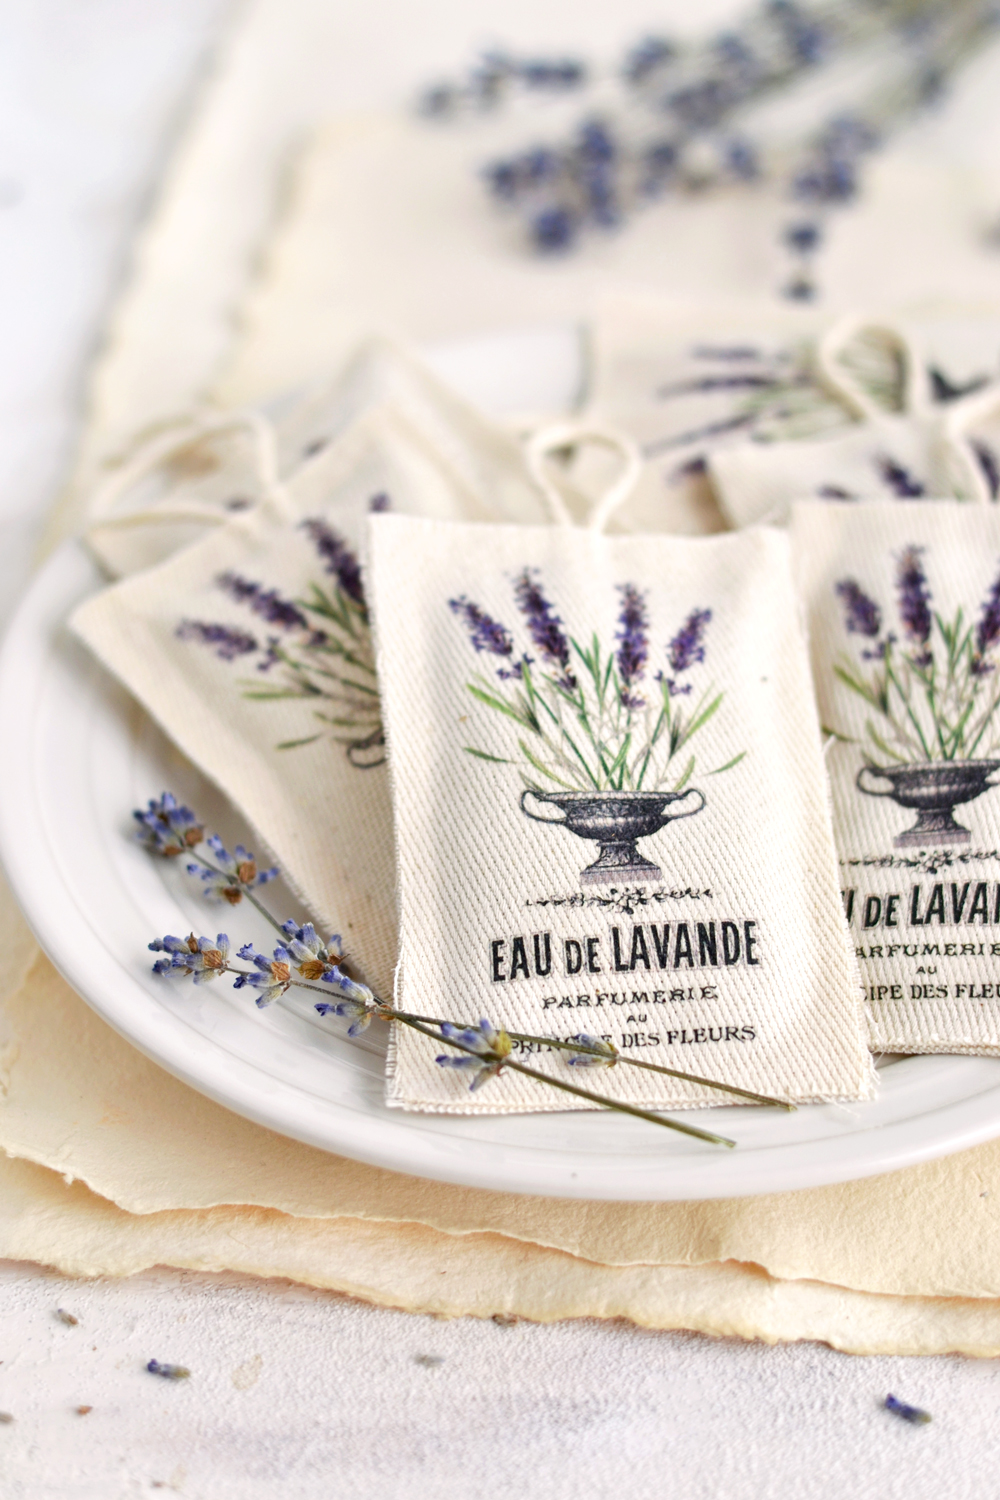 Learn how to make these DIY No Sew Lavender Sachets using the iron on image transfer technique, scrap pieces of fabric and your glue gun! Free printable included! #frenchephemera #nosew #vintage #lavender #lavendersachets #diy